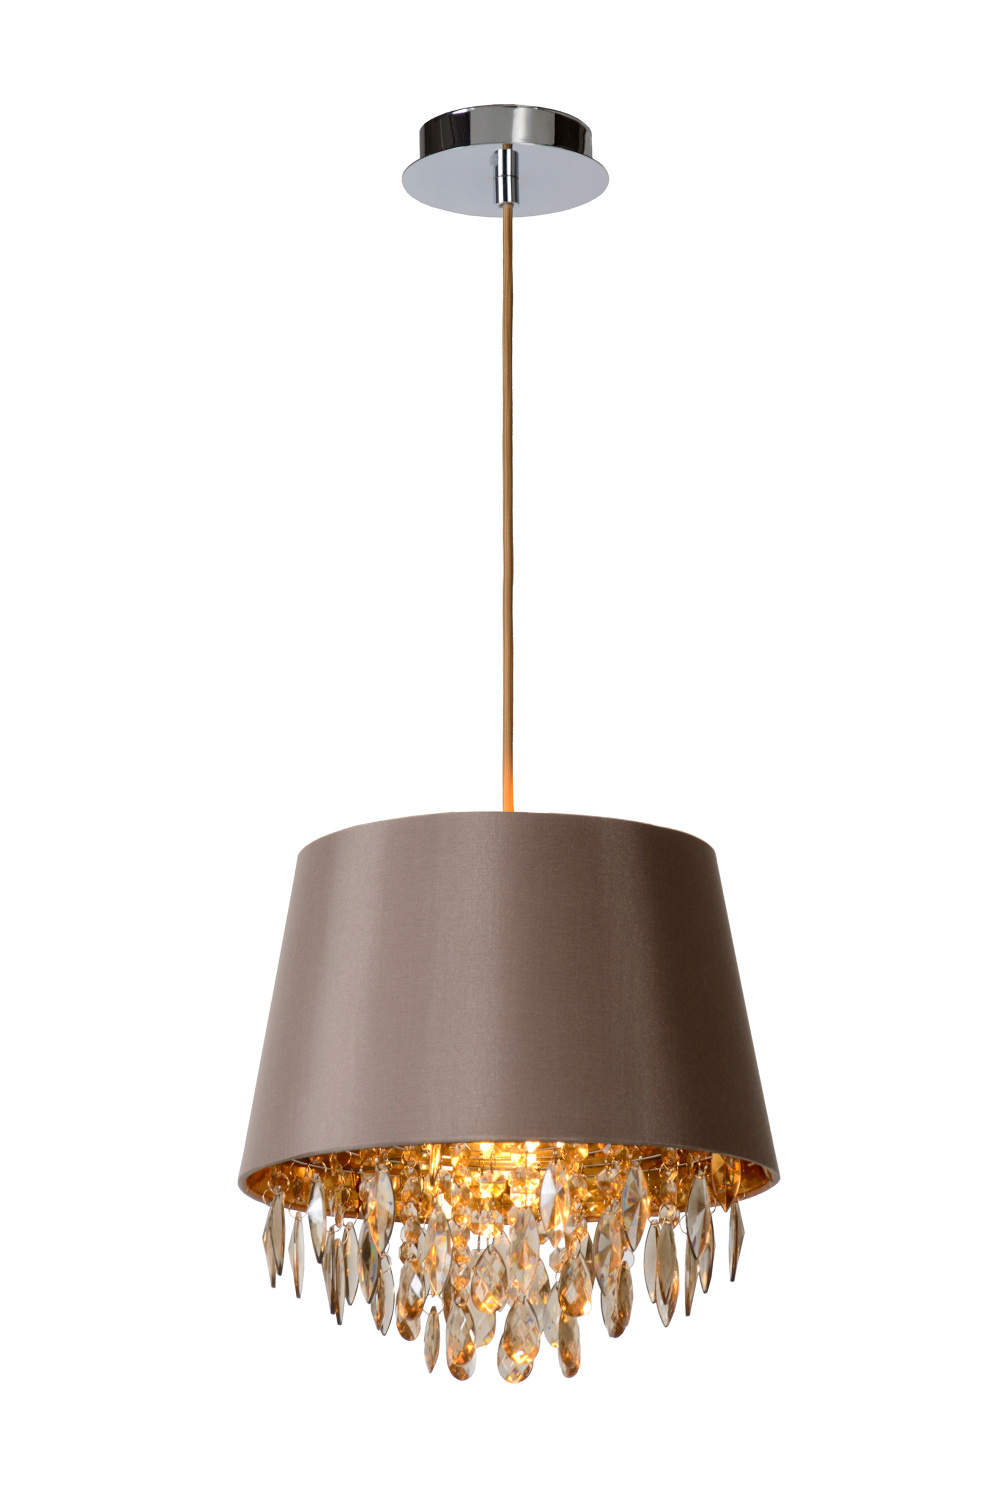 Lucide DOLTI Hanglamp-Taupe-Ø30,5-1xE27-60W-Acryli.